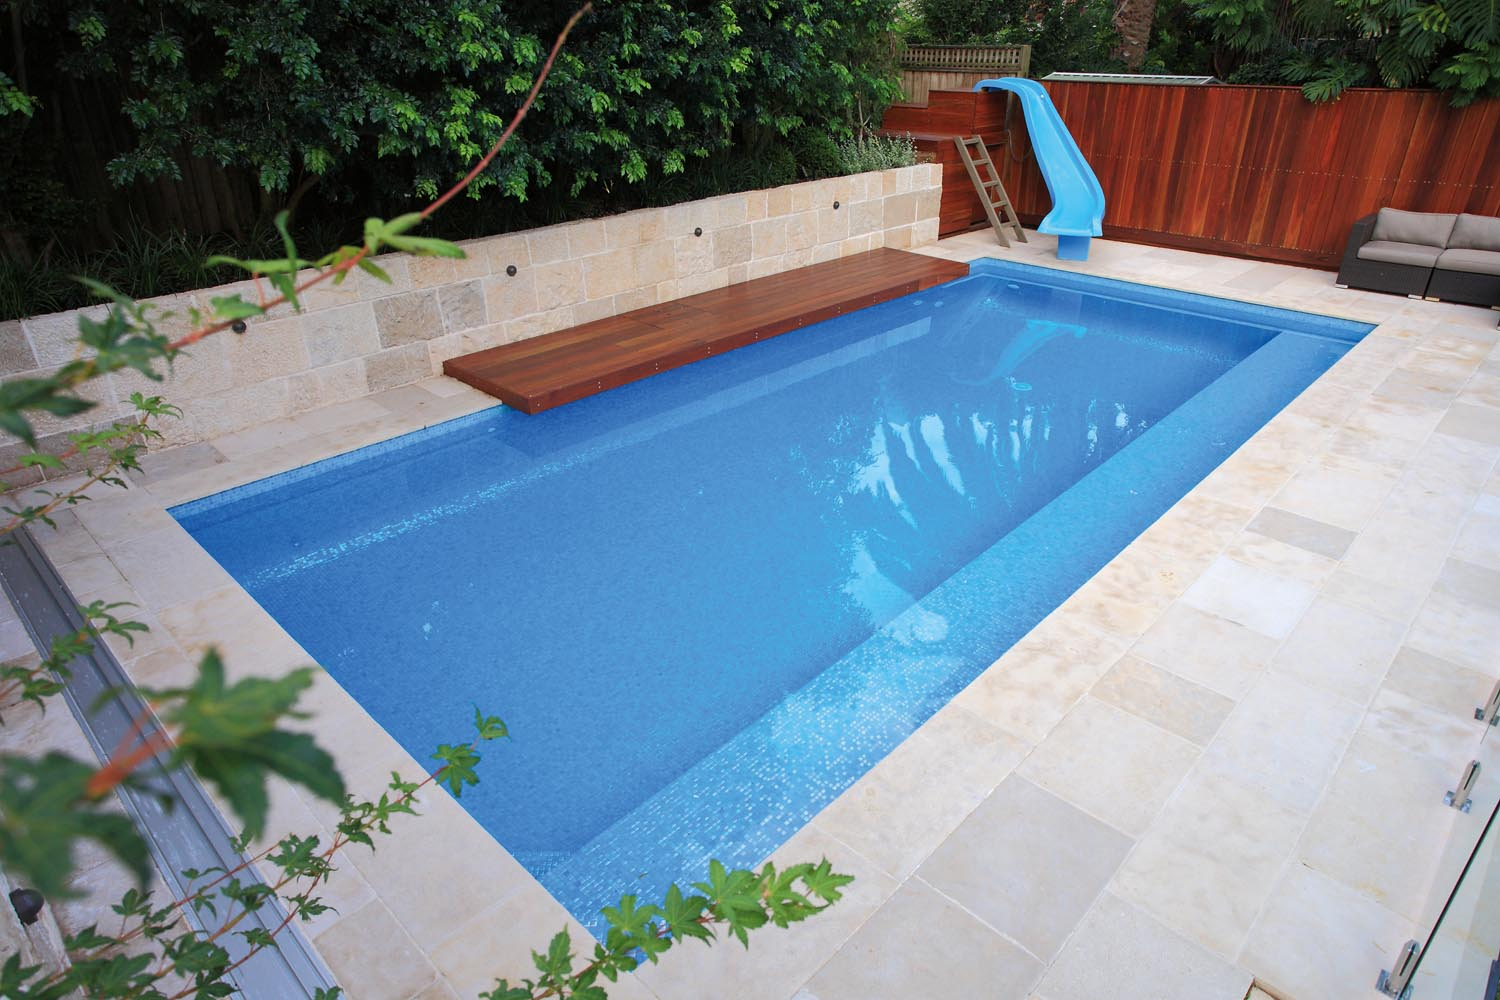 A modern blue pool with a water slide and outdoor furniture surrounded by plants